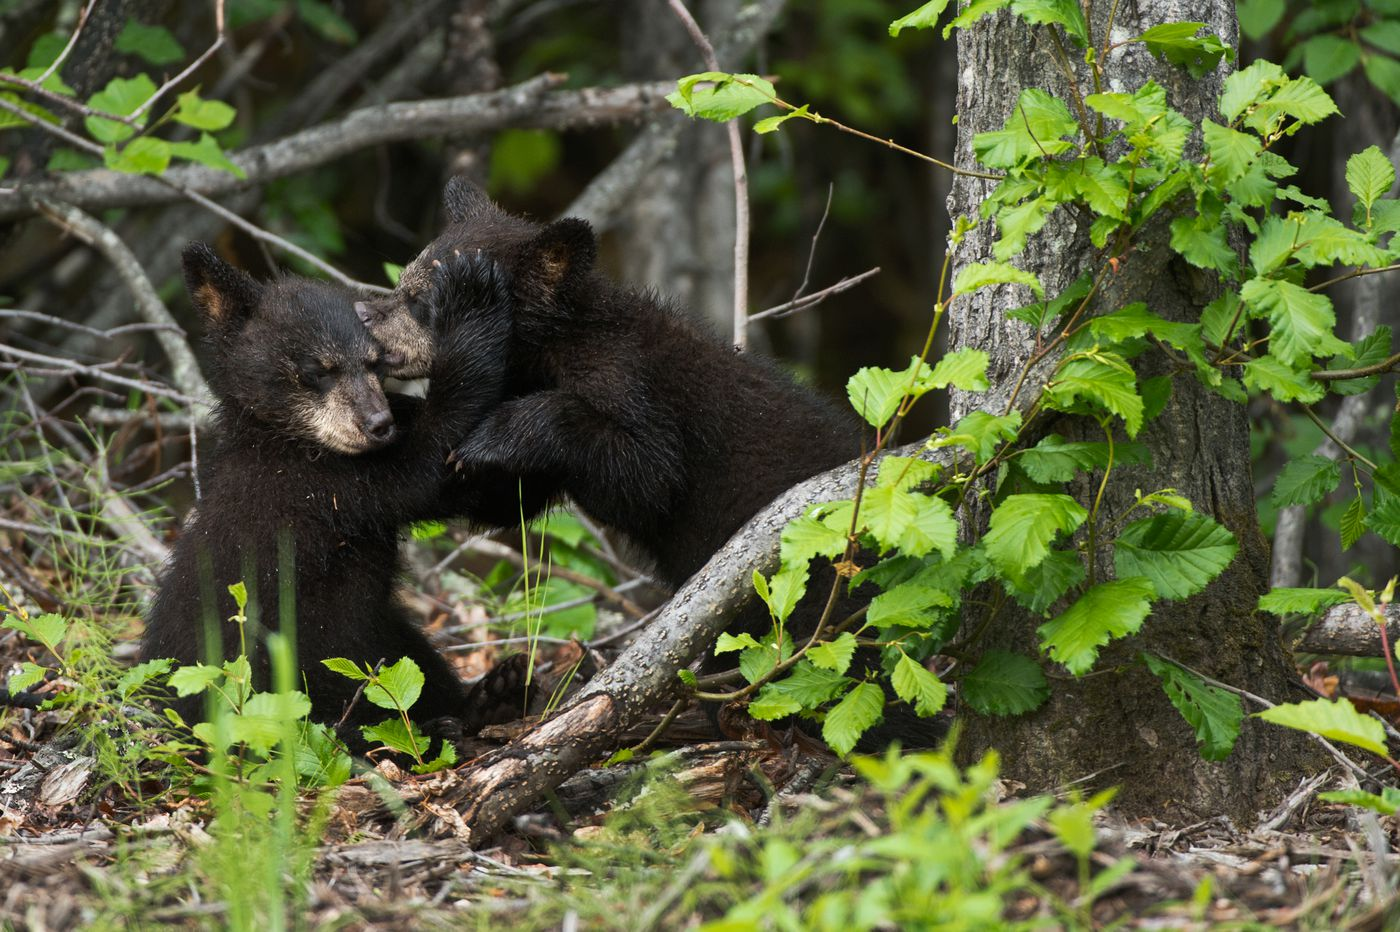 Three black bear cubs wrestled and climbed trees this week along Arctic Valley Road, about a mile from Moose Run Golf Course. (Marc Lester / Alaska Dispatch News)